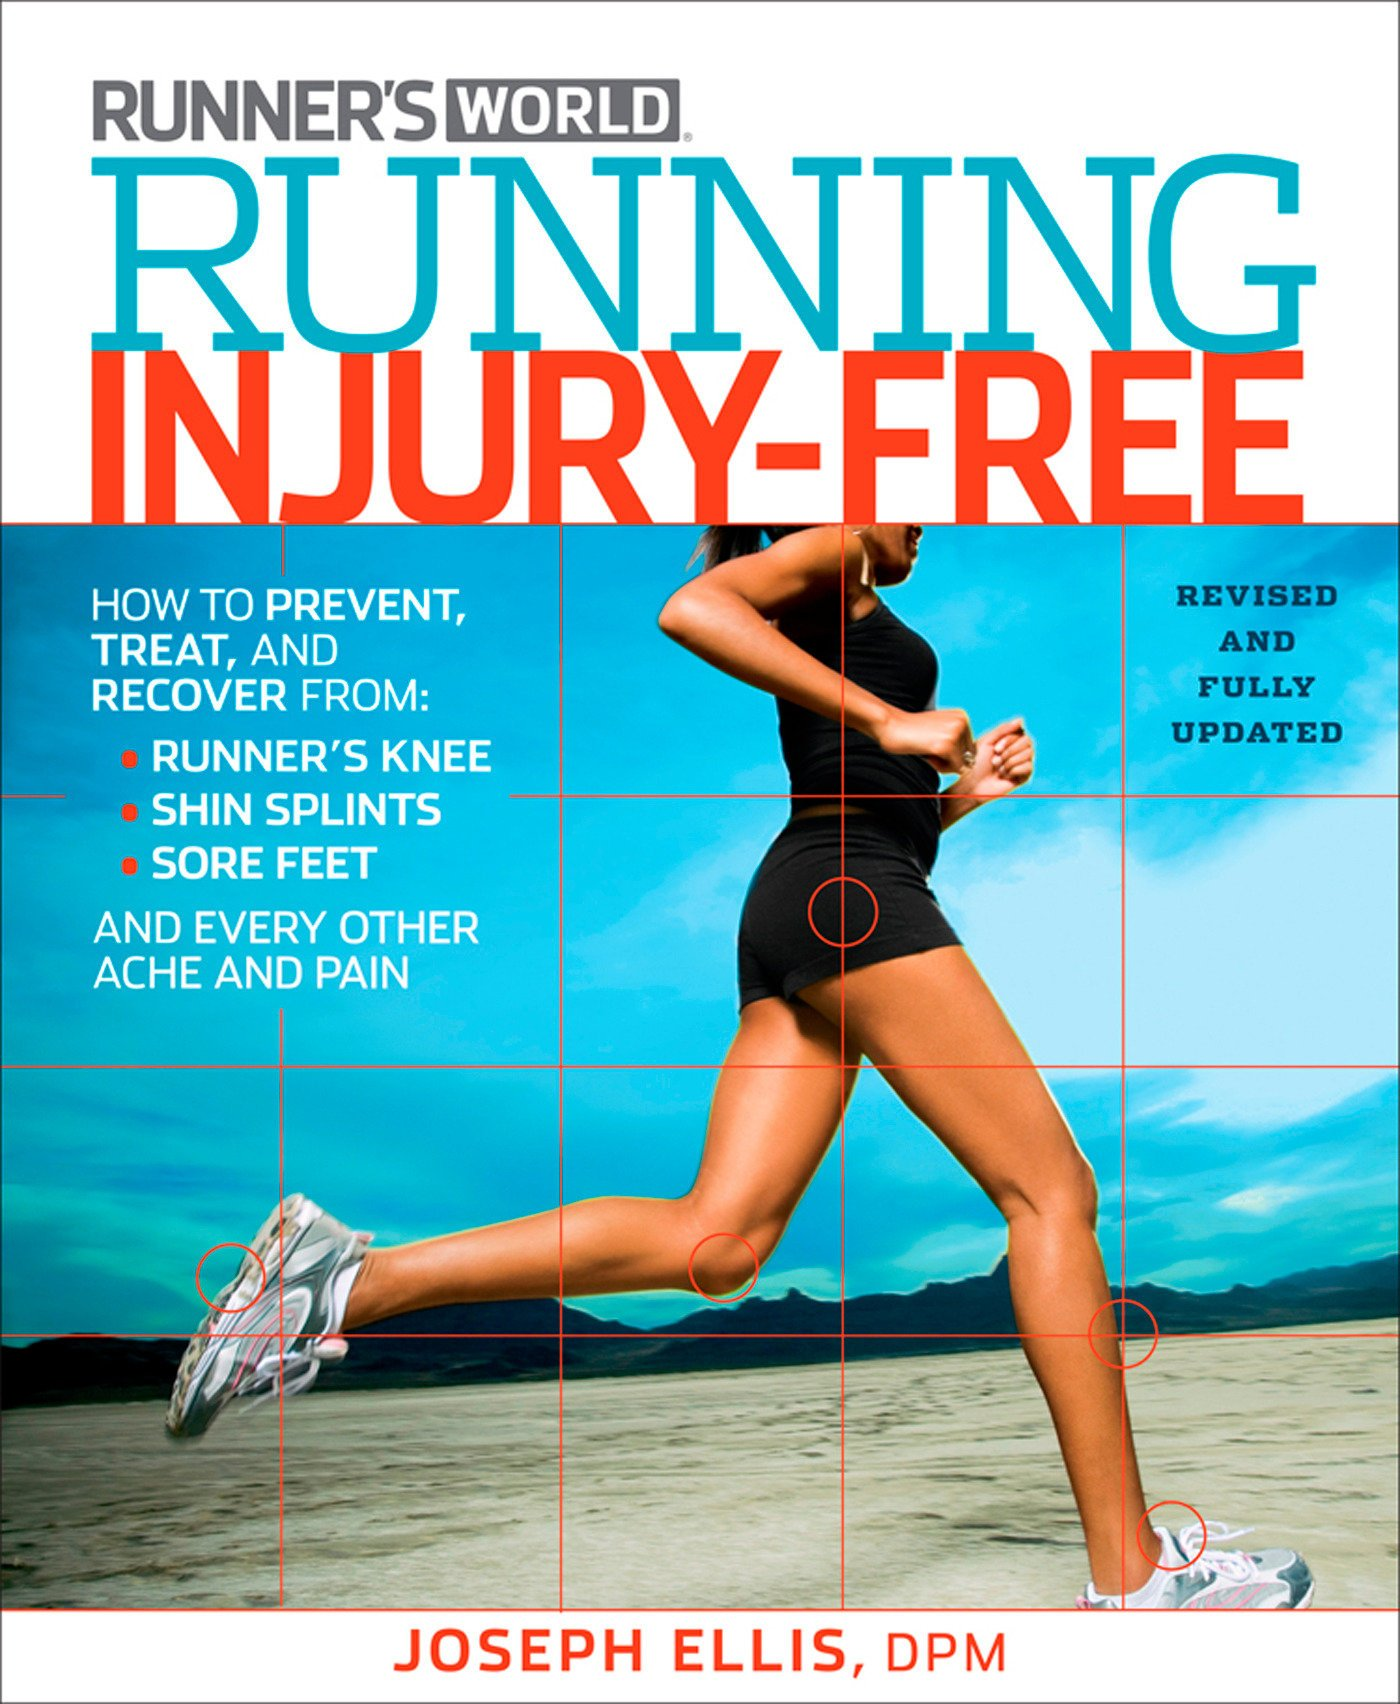 Download Running Injury-Free: How to Prevent, Treat, and Recover From Runner's Knee, Shin Splints, Sore Feet and Every Other Ache and Pain PDF